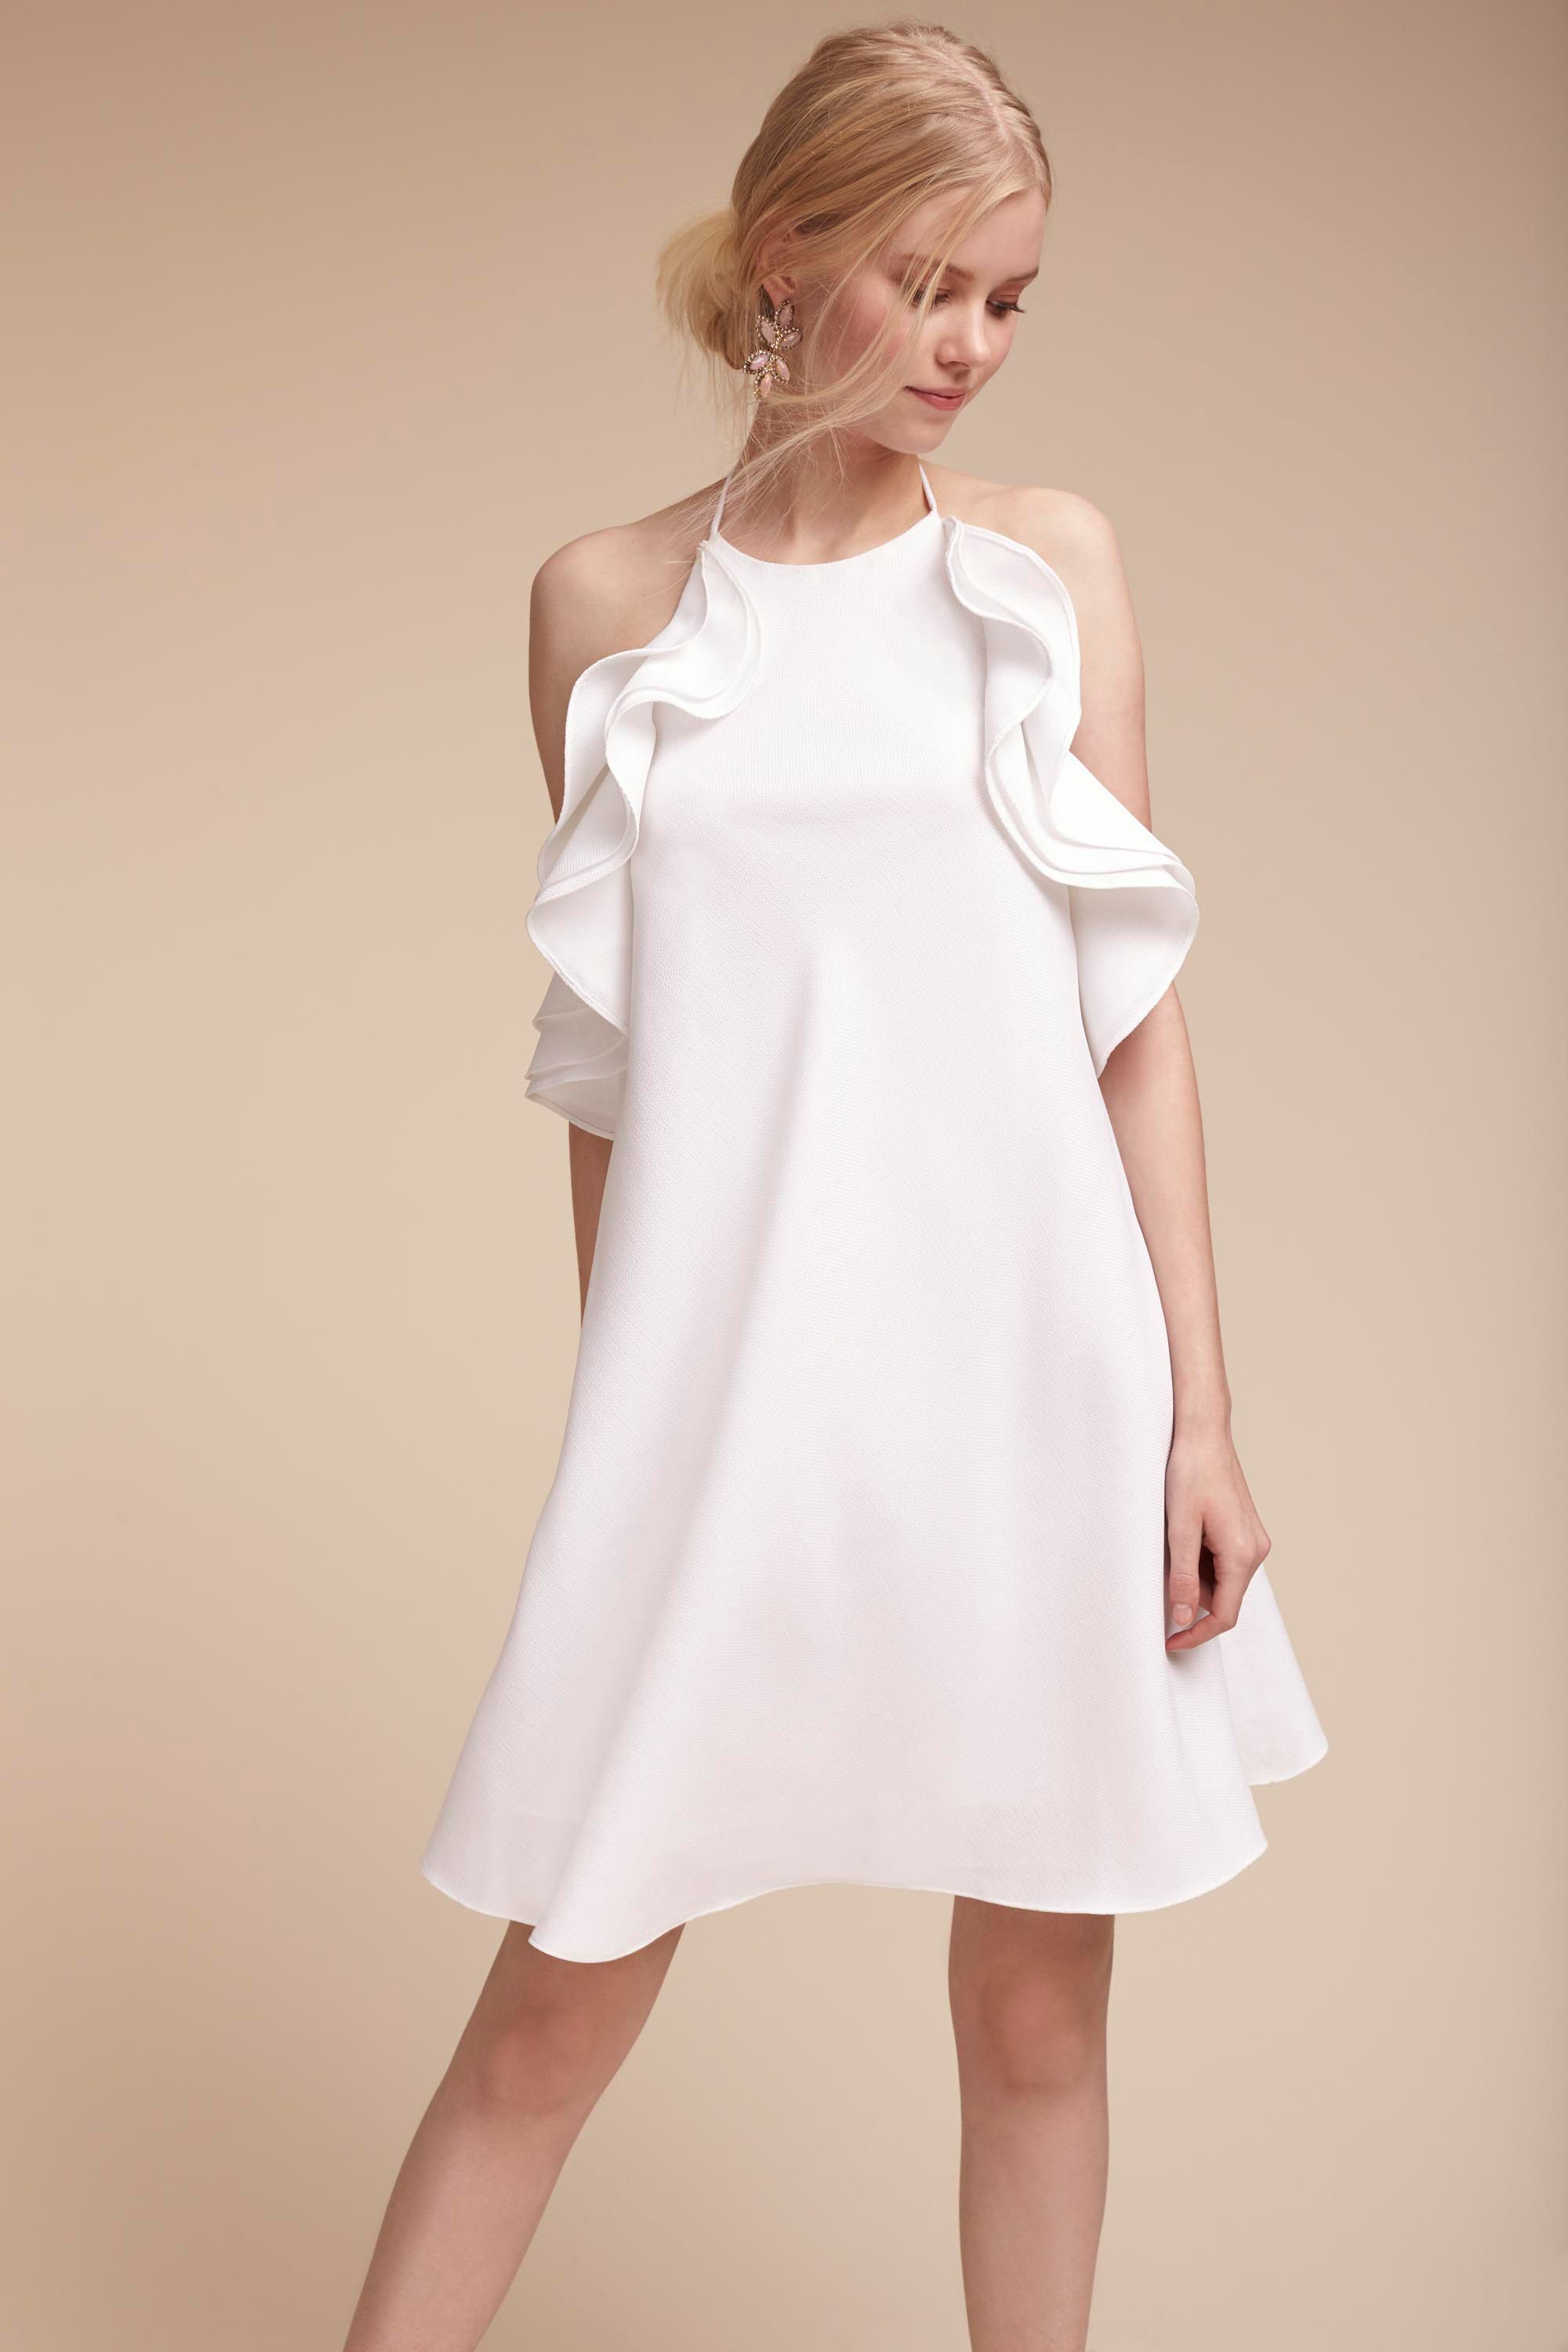 Badgley mischka white dress